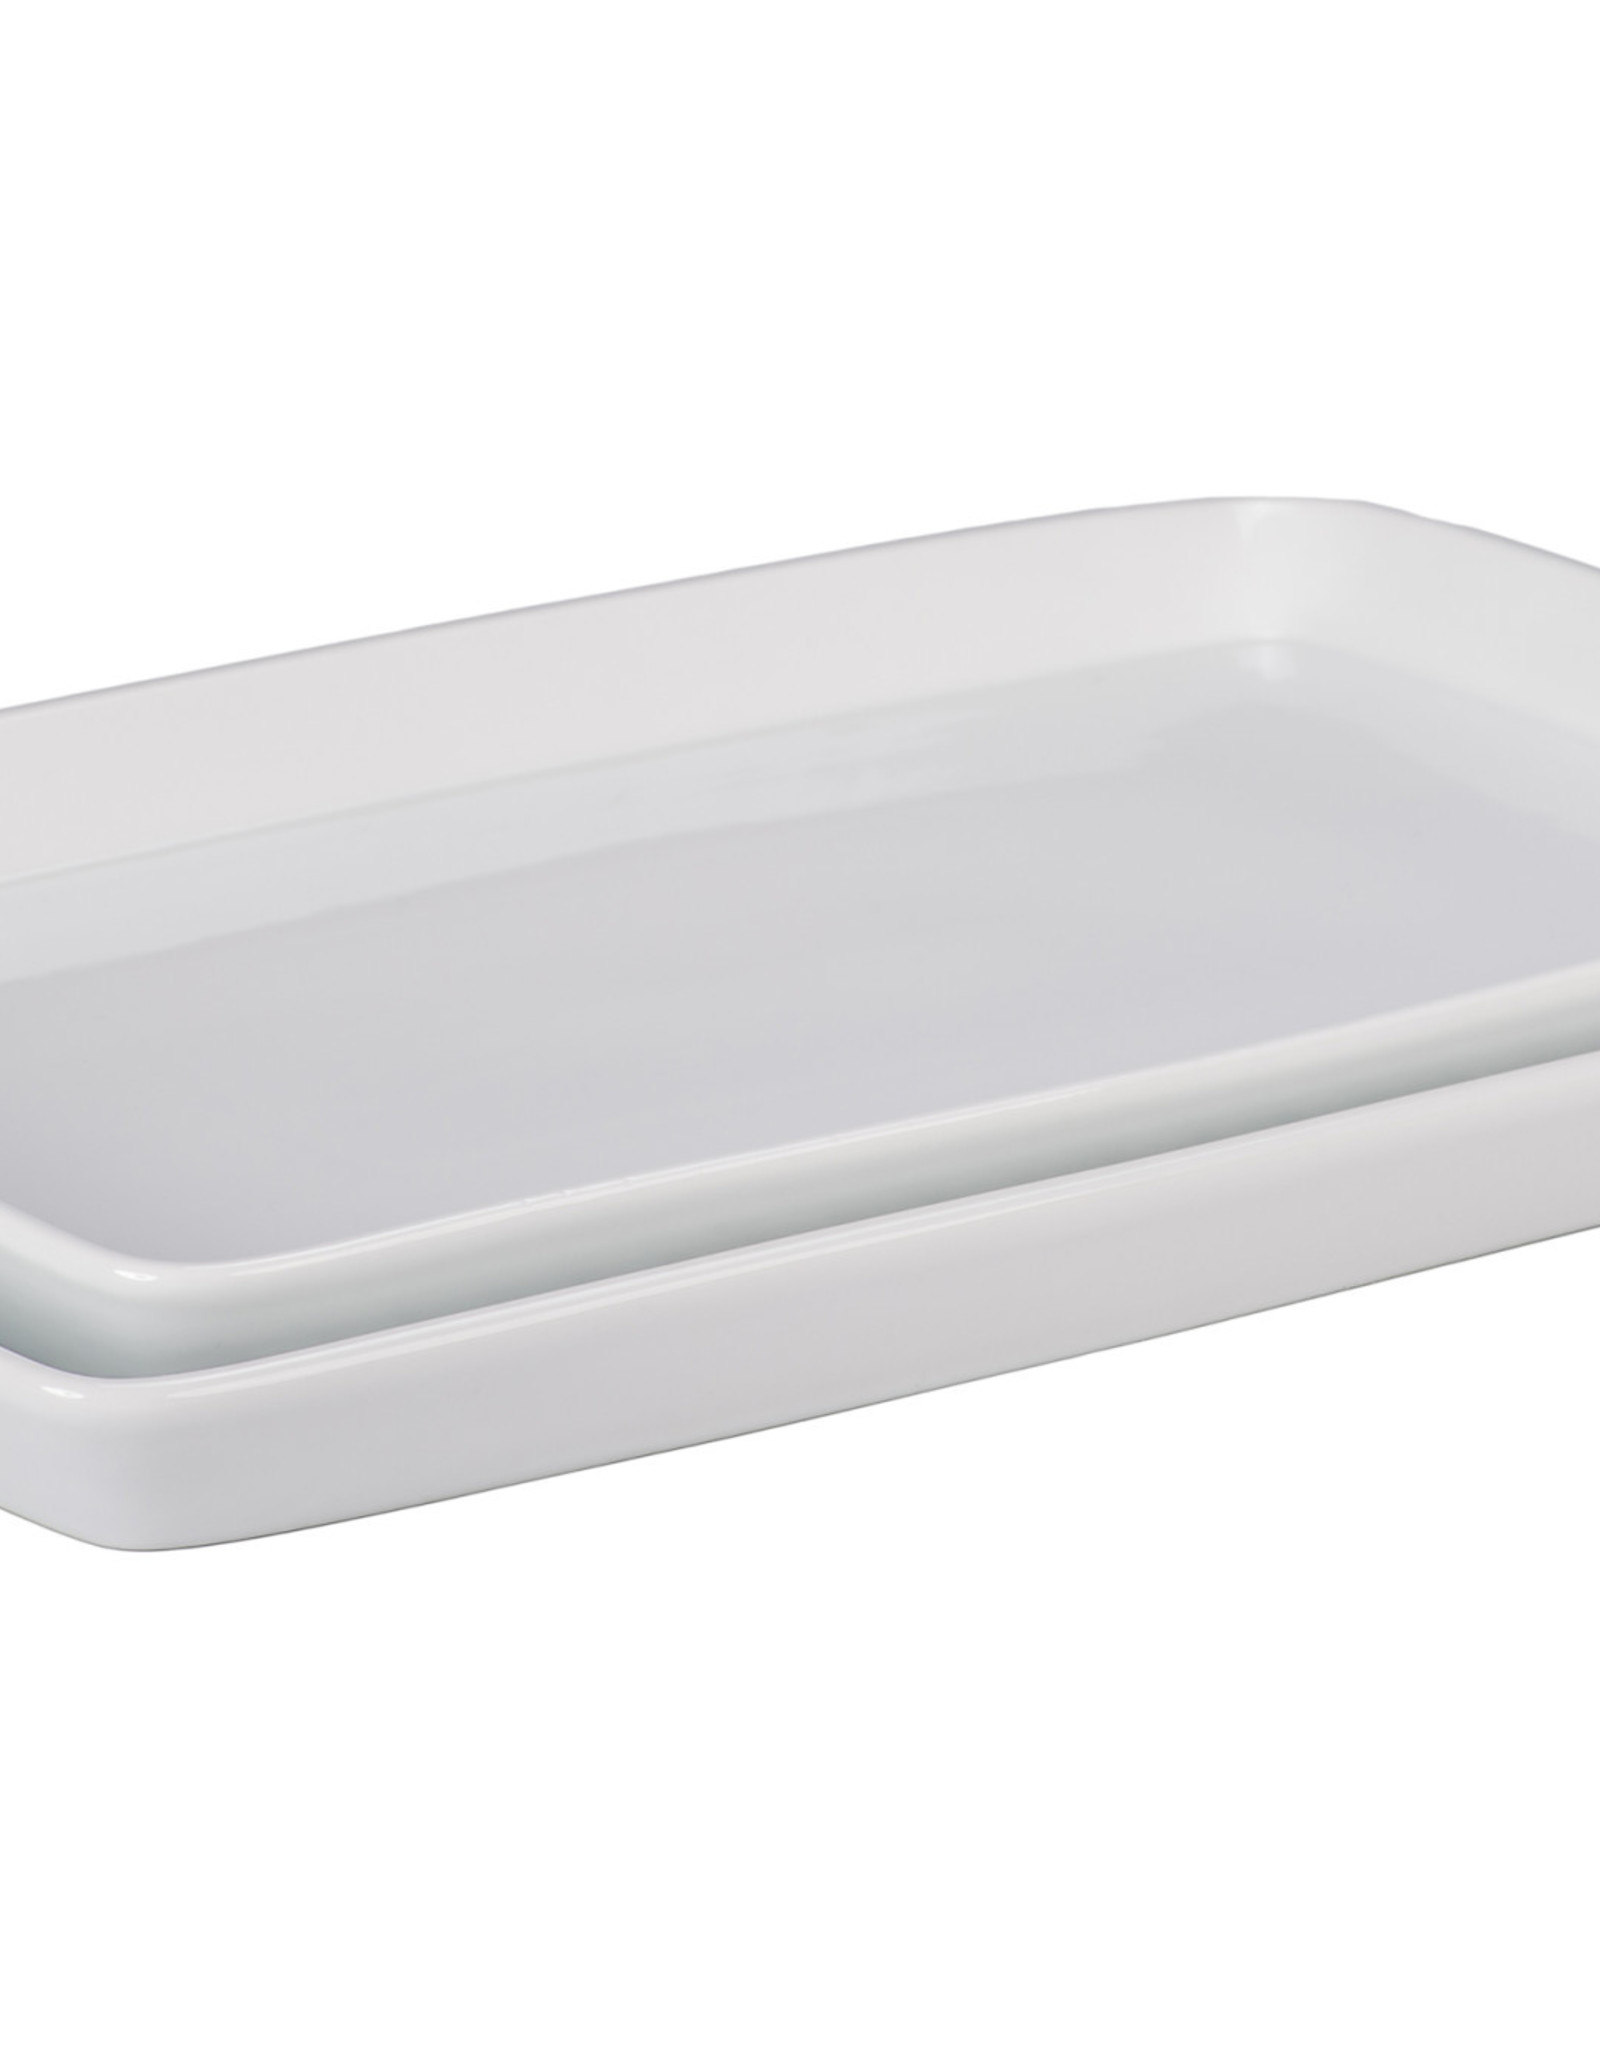 PLATTER RECTANGLE SMALL 16.75 INCH X 10.75 INCH